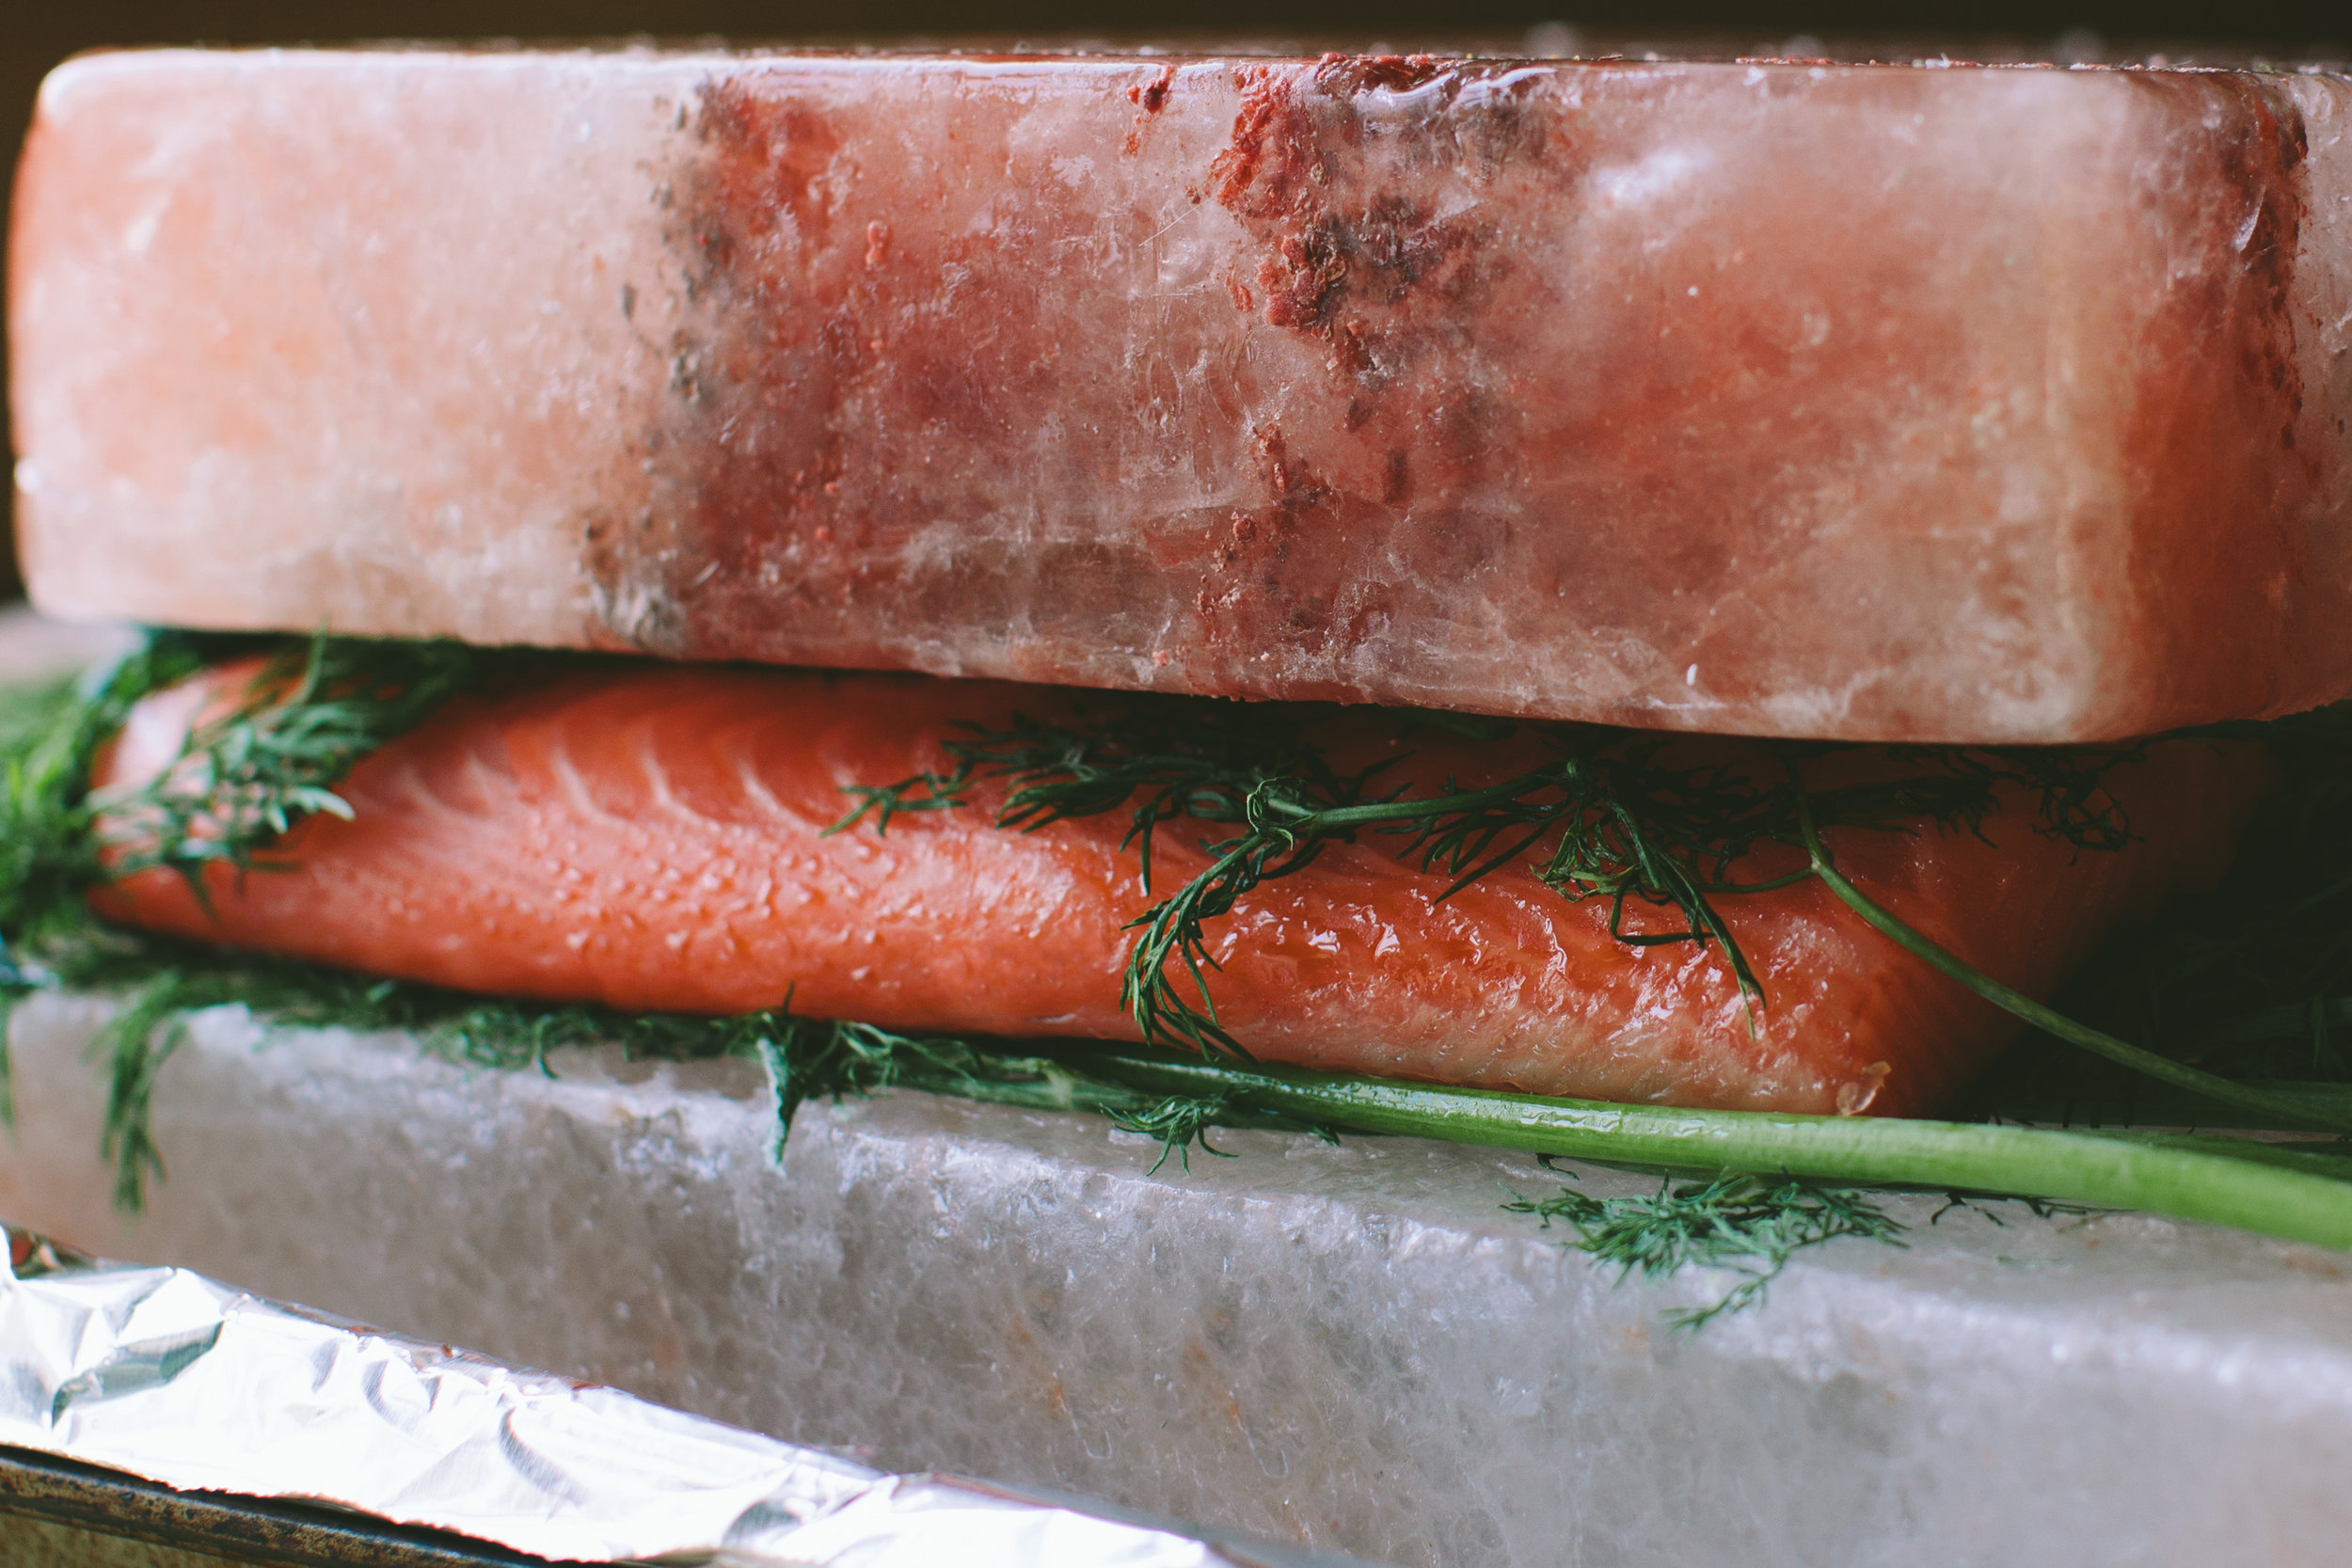 Homemade Gravlax (Cured Salmon) from A Thought For Food - www.athoughtforfood.net